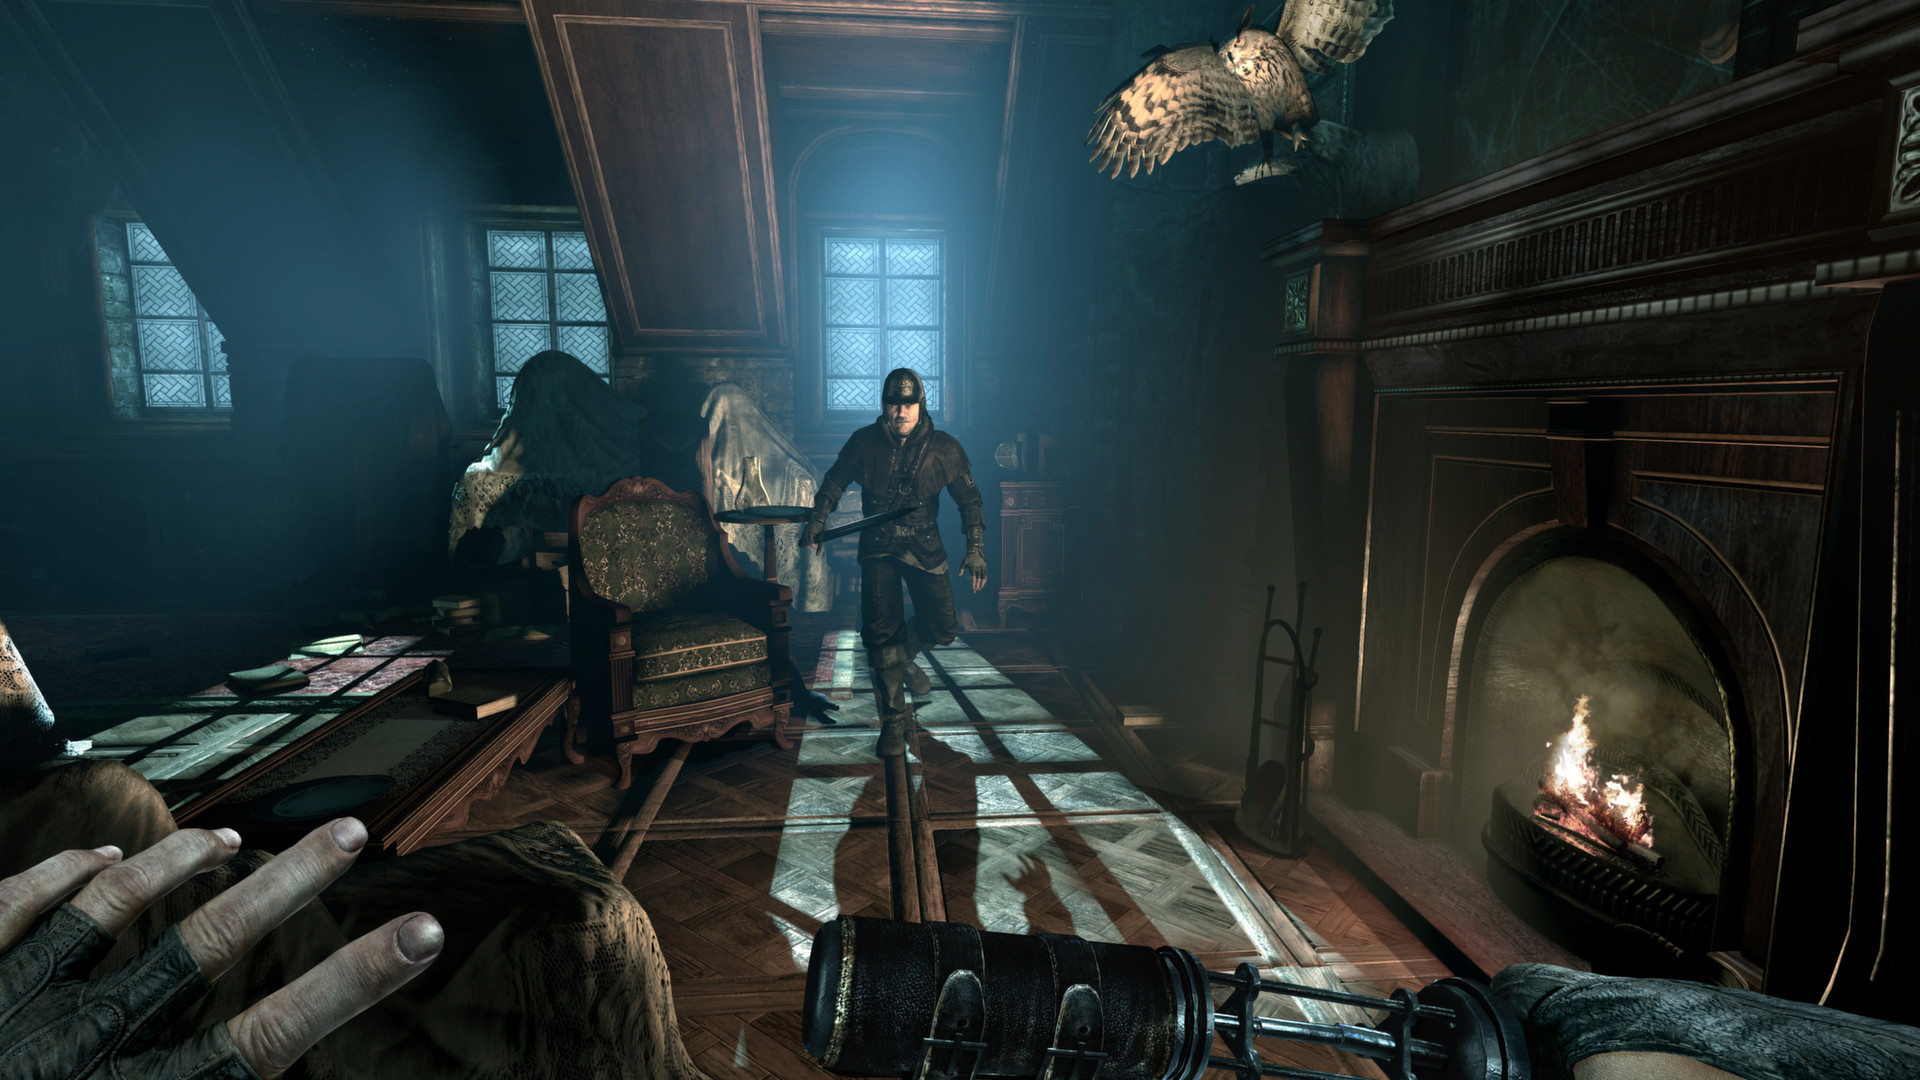 Download links for Thief PC game